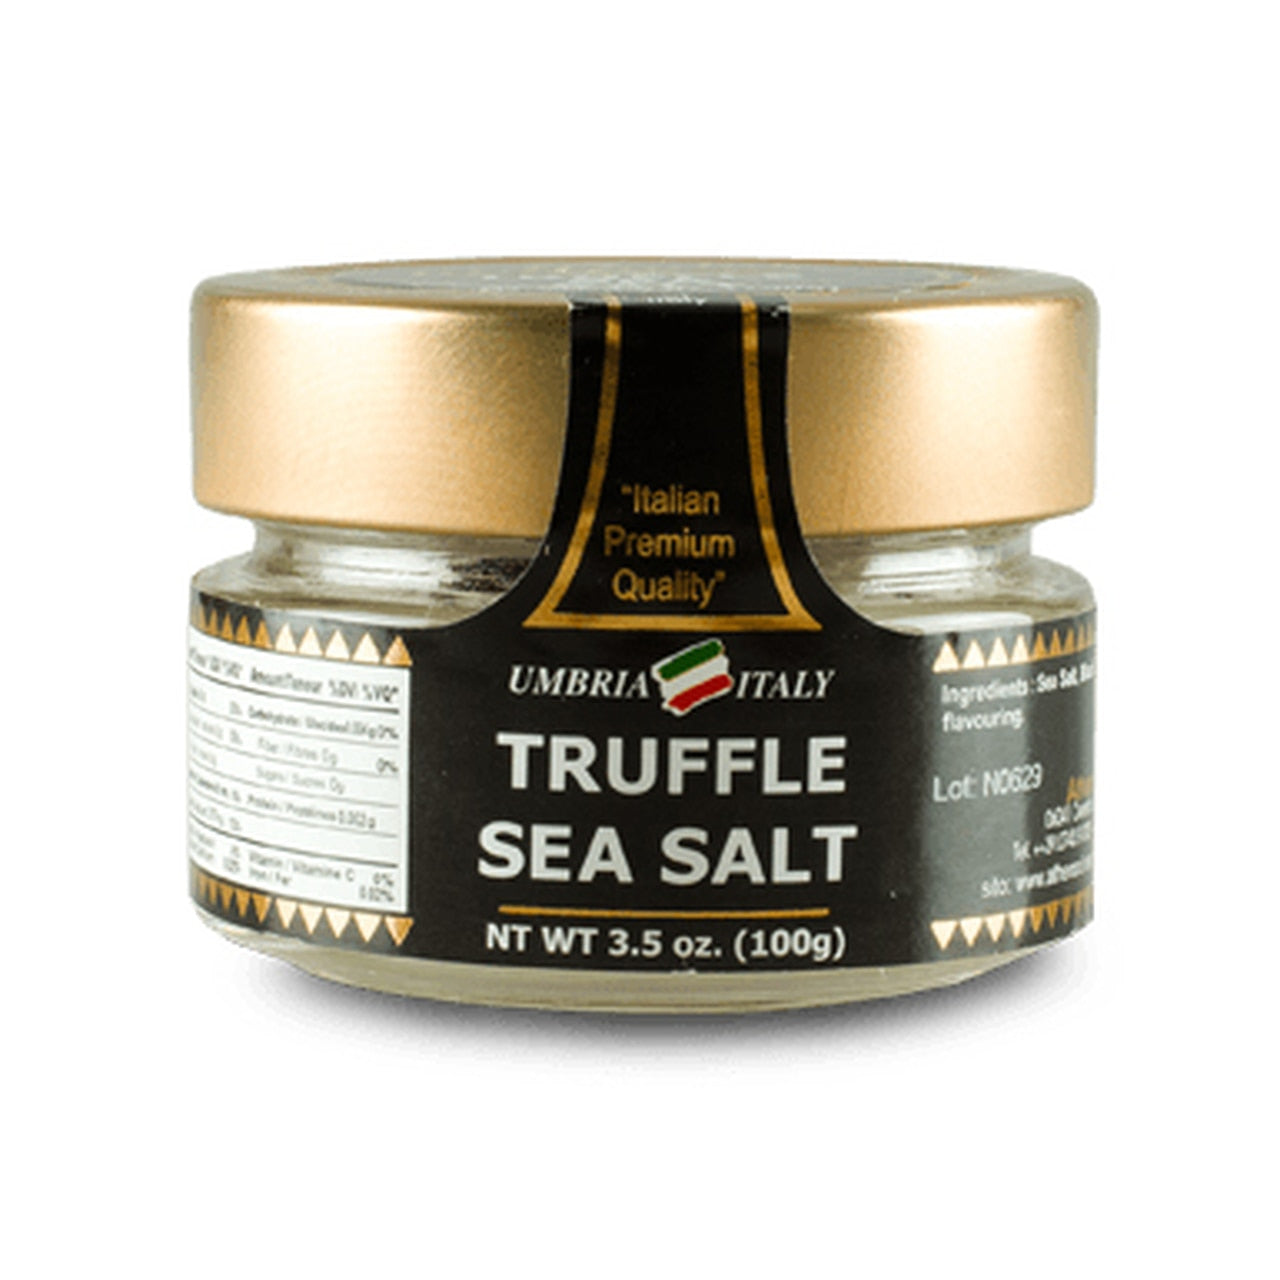 Umbria Truffle Sea Salt 100g